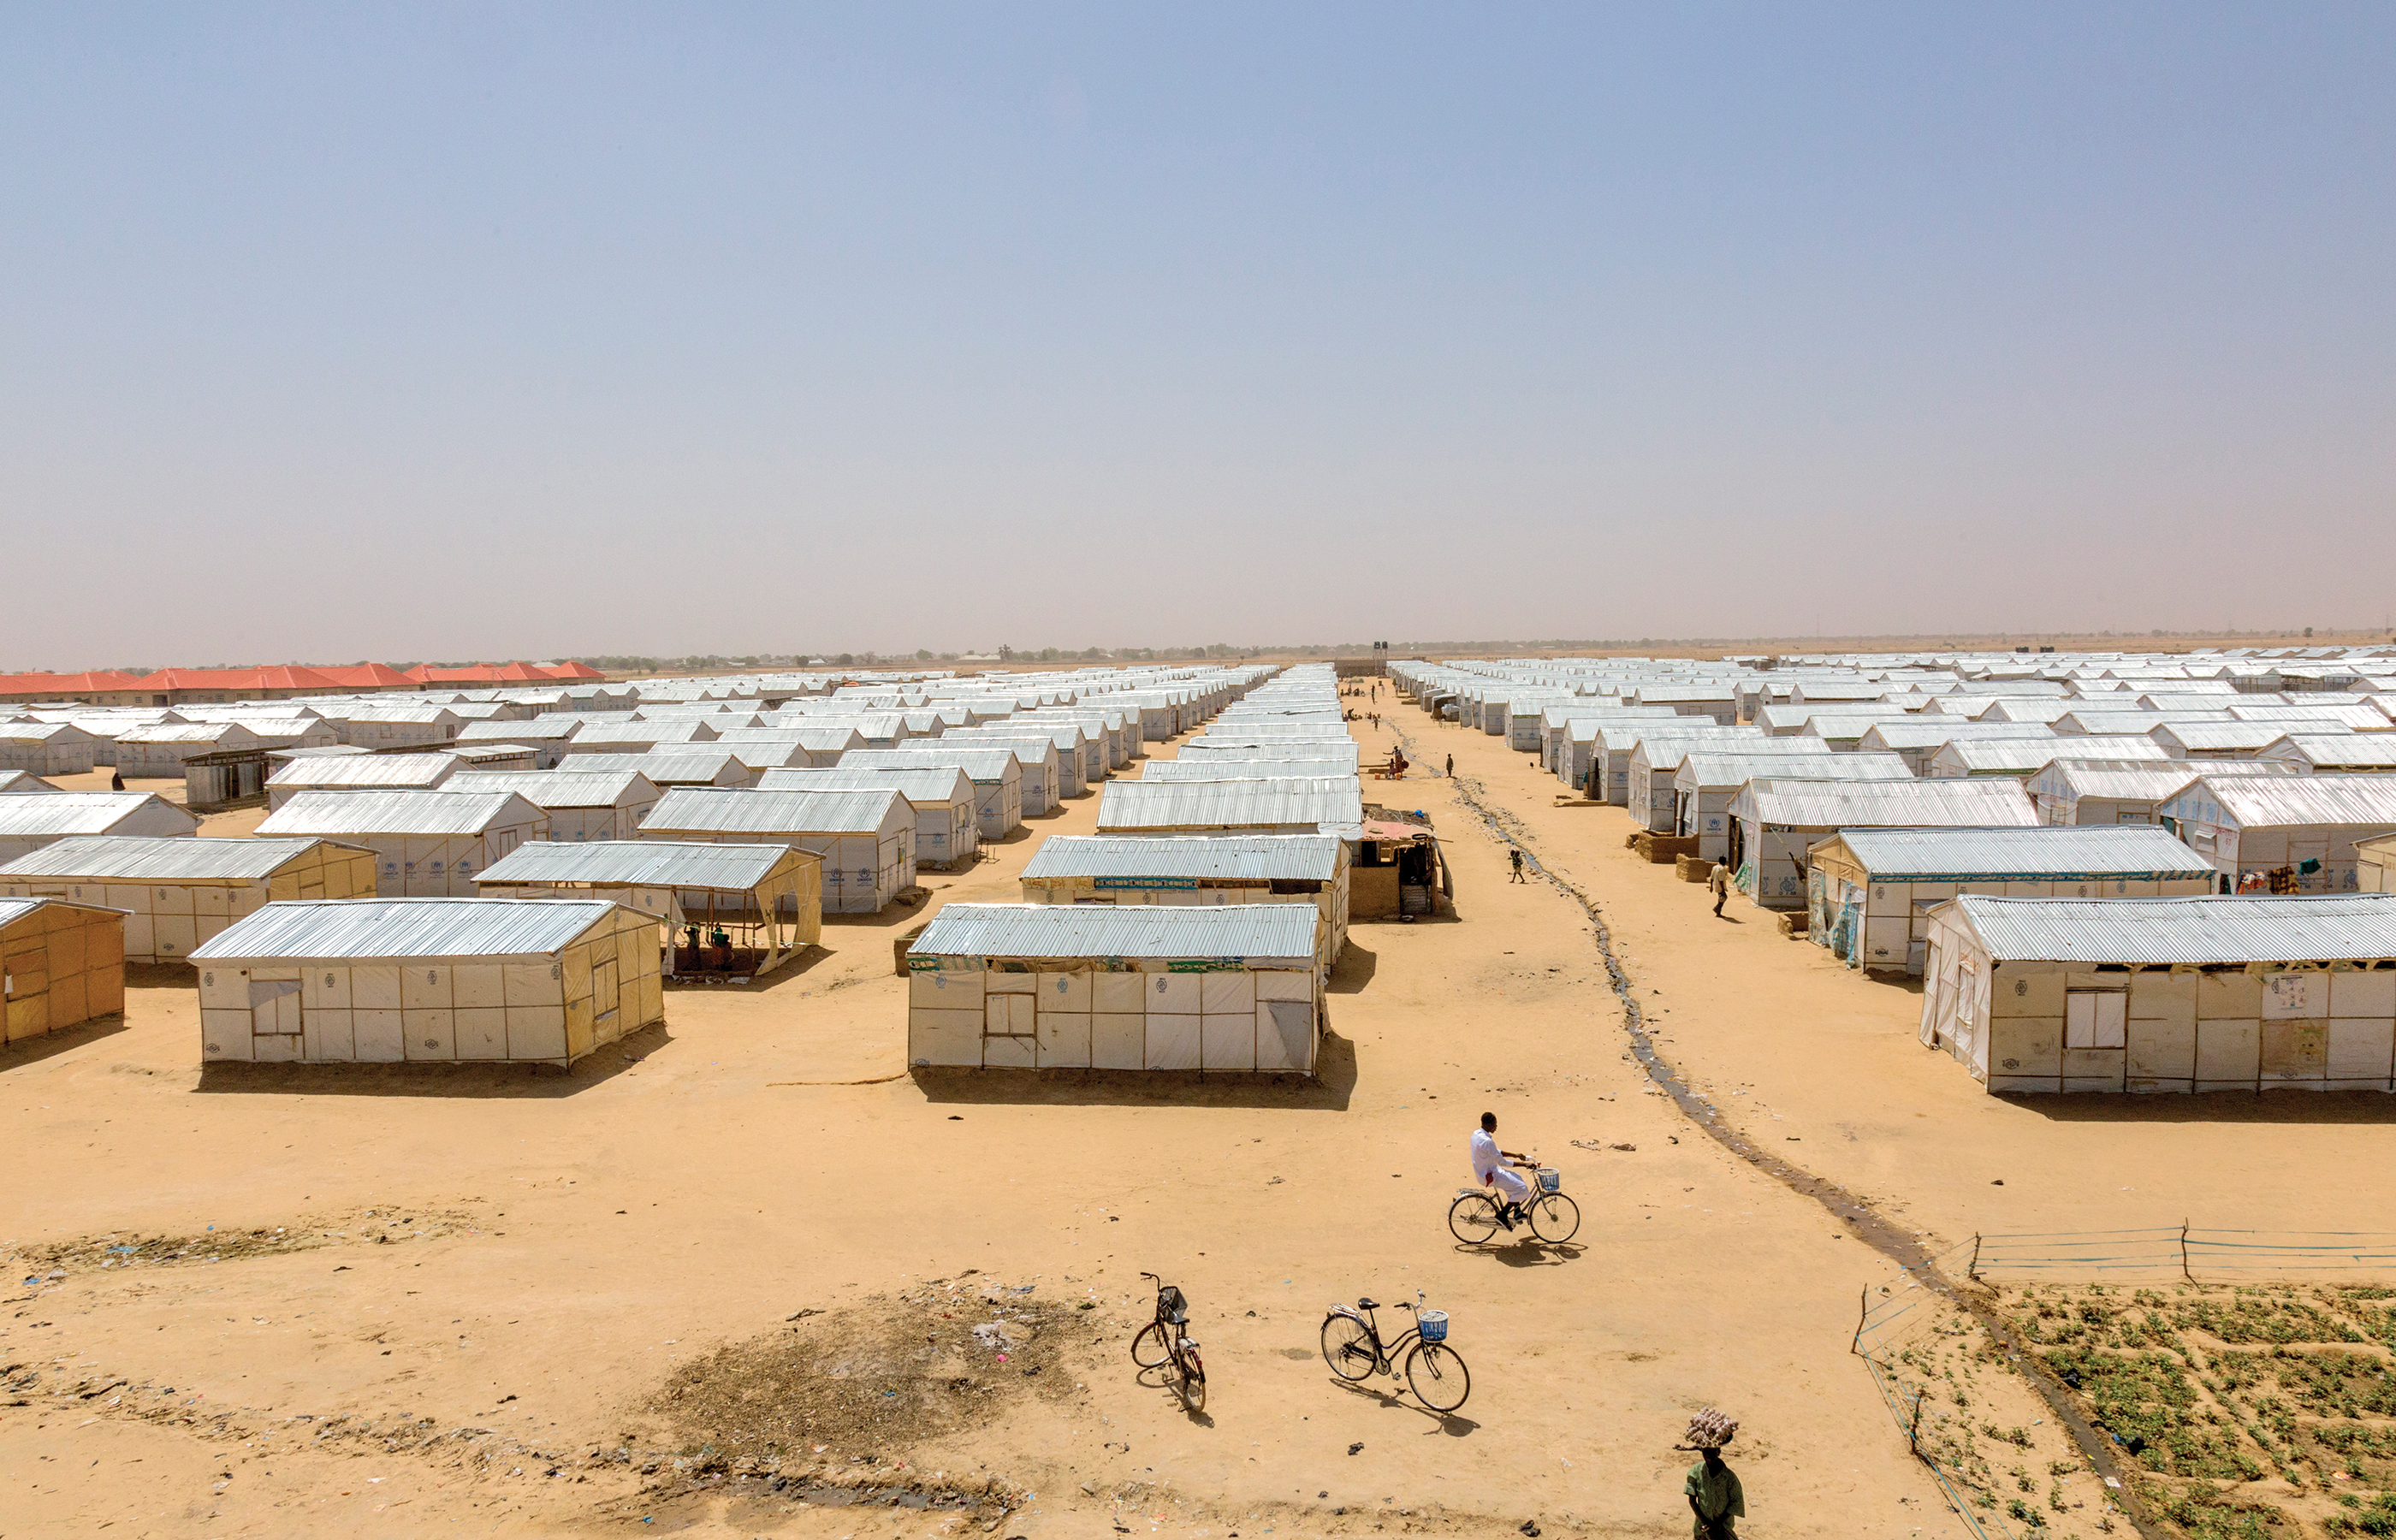 An overview image of the Bakasi IDP camp showing rows of tents.